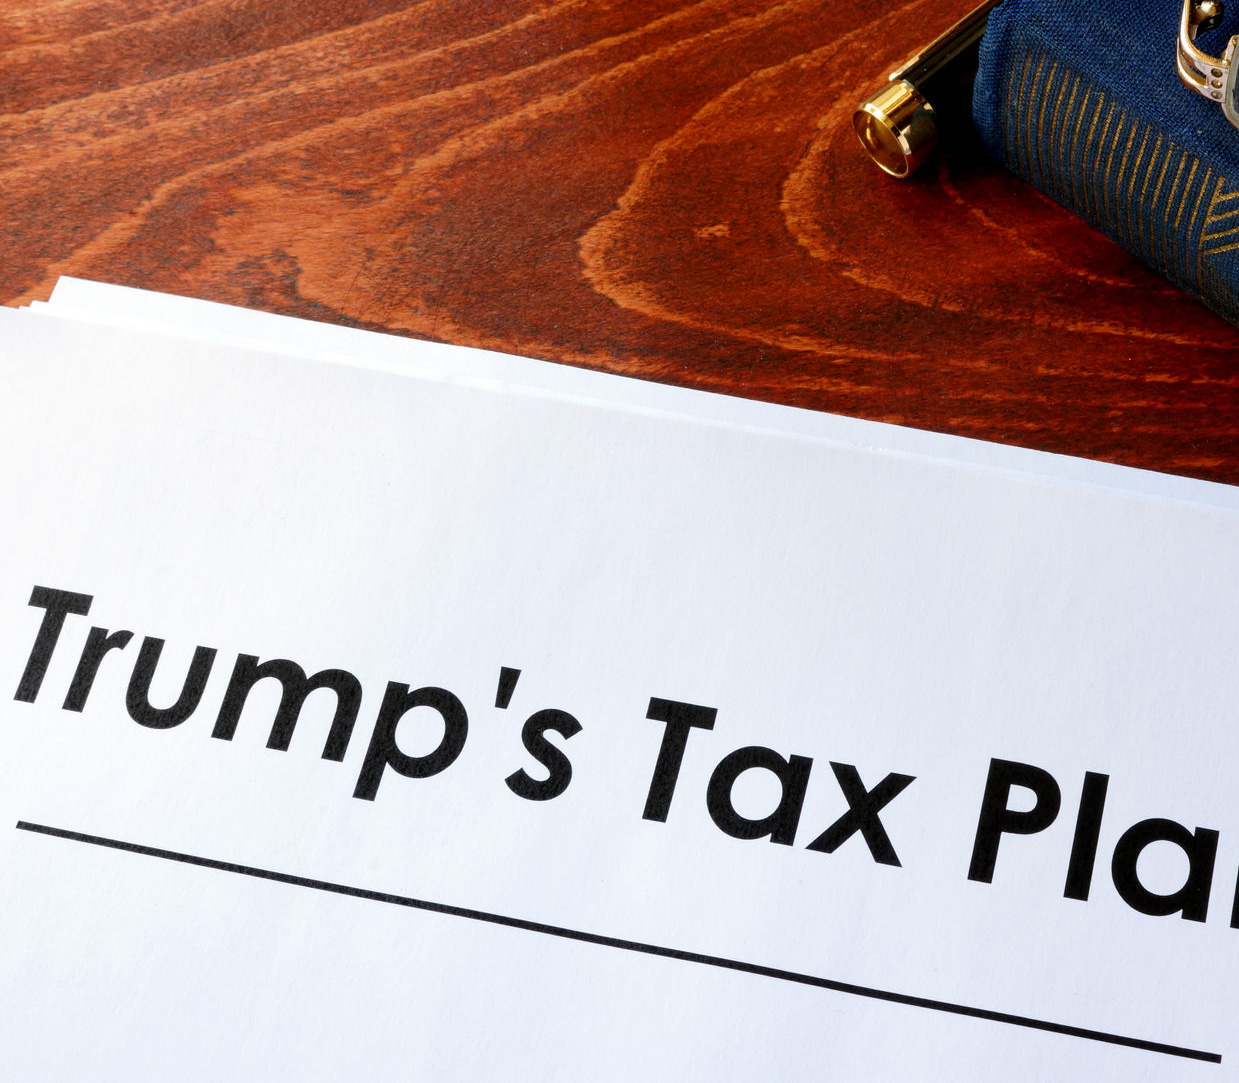 Trump's Tax Plan: A Move In The Right Direction